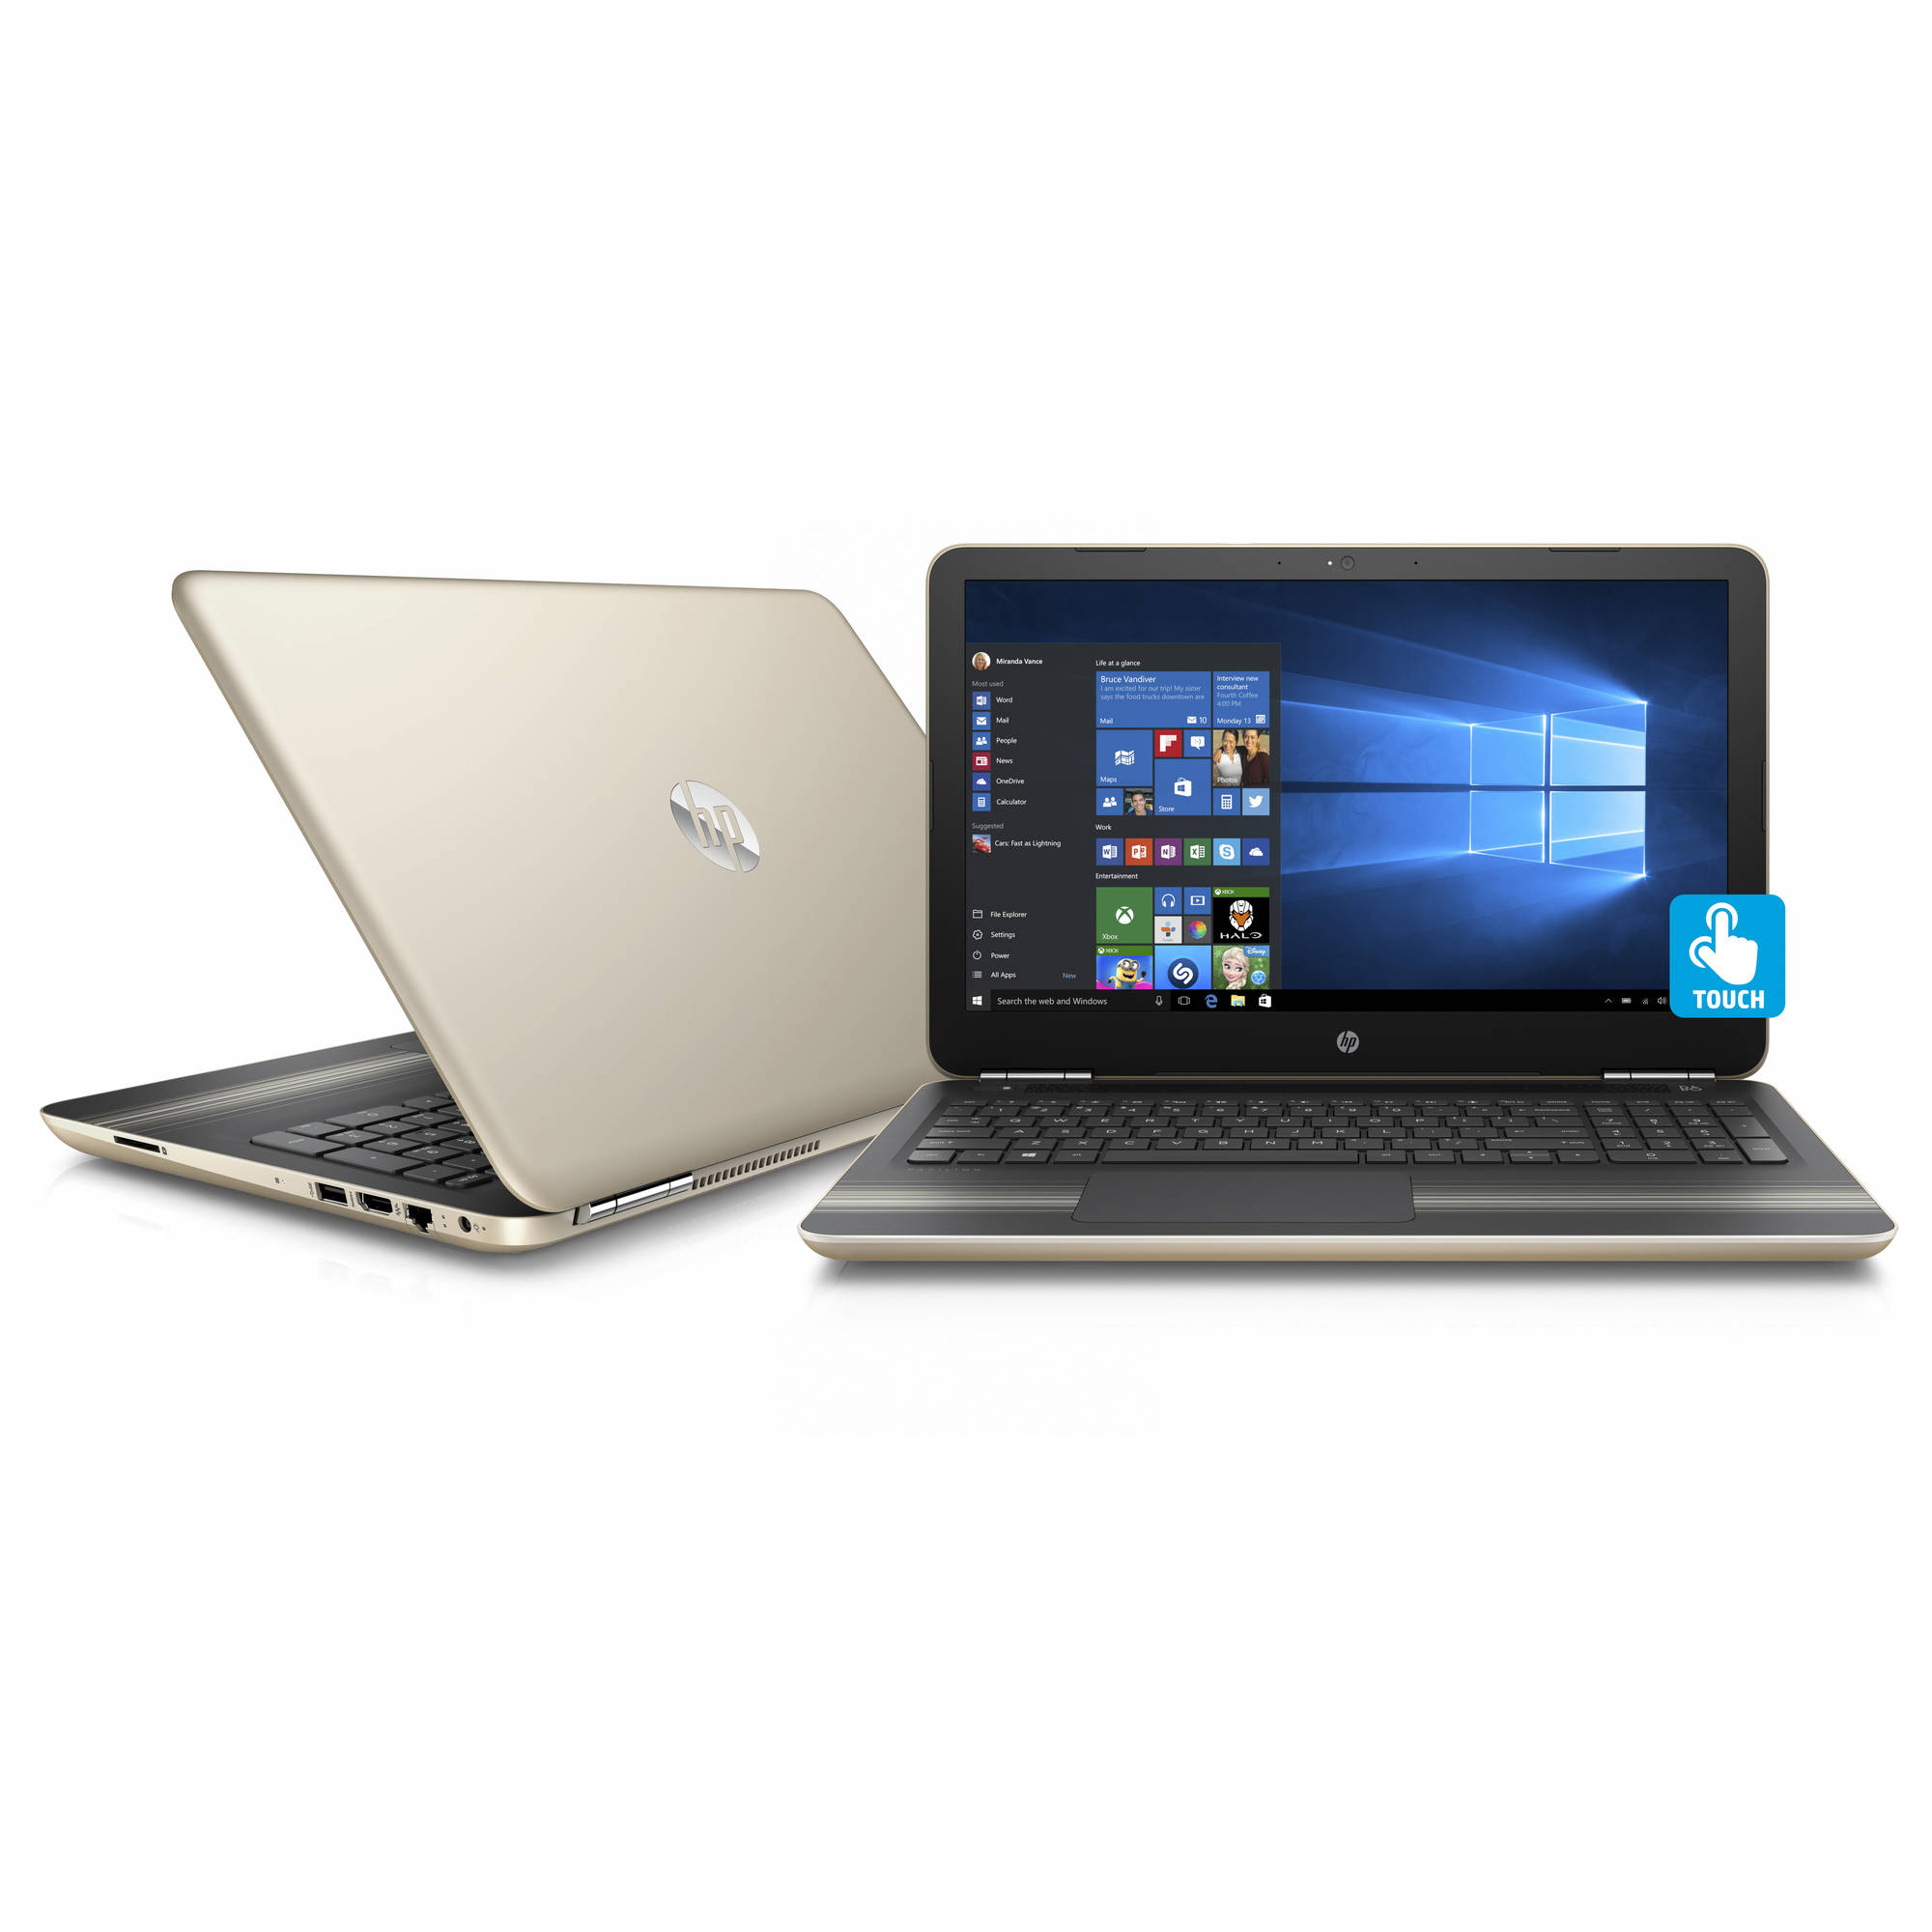 "HP Pavilion 15-au030wm 15.6"" Manhattan Gold Laptop, Touch Screen, Windows 10,  Intel Core i5-6200U Processor, 8GB Memory, 1TB Hard Drive"